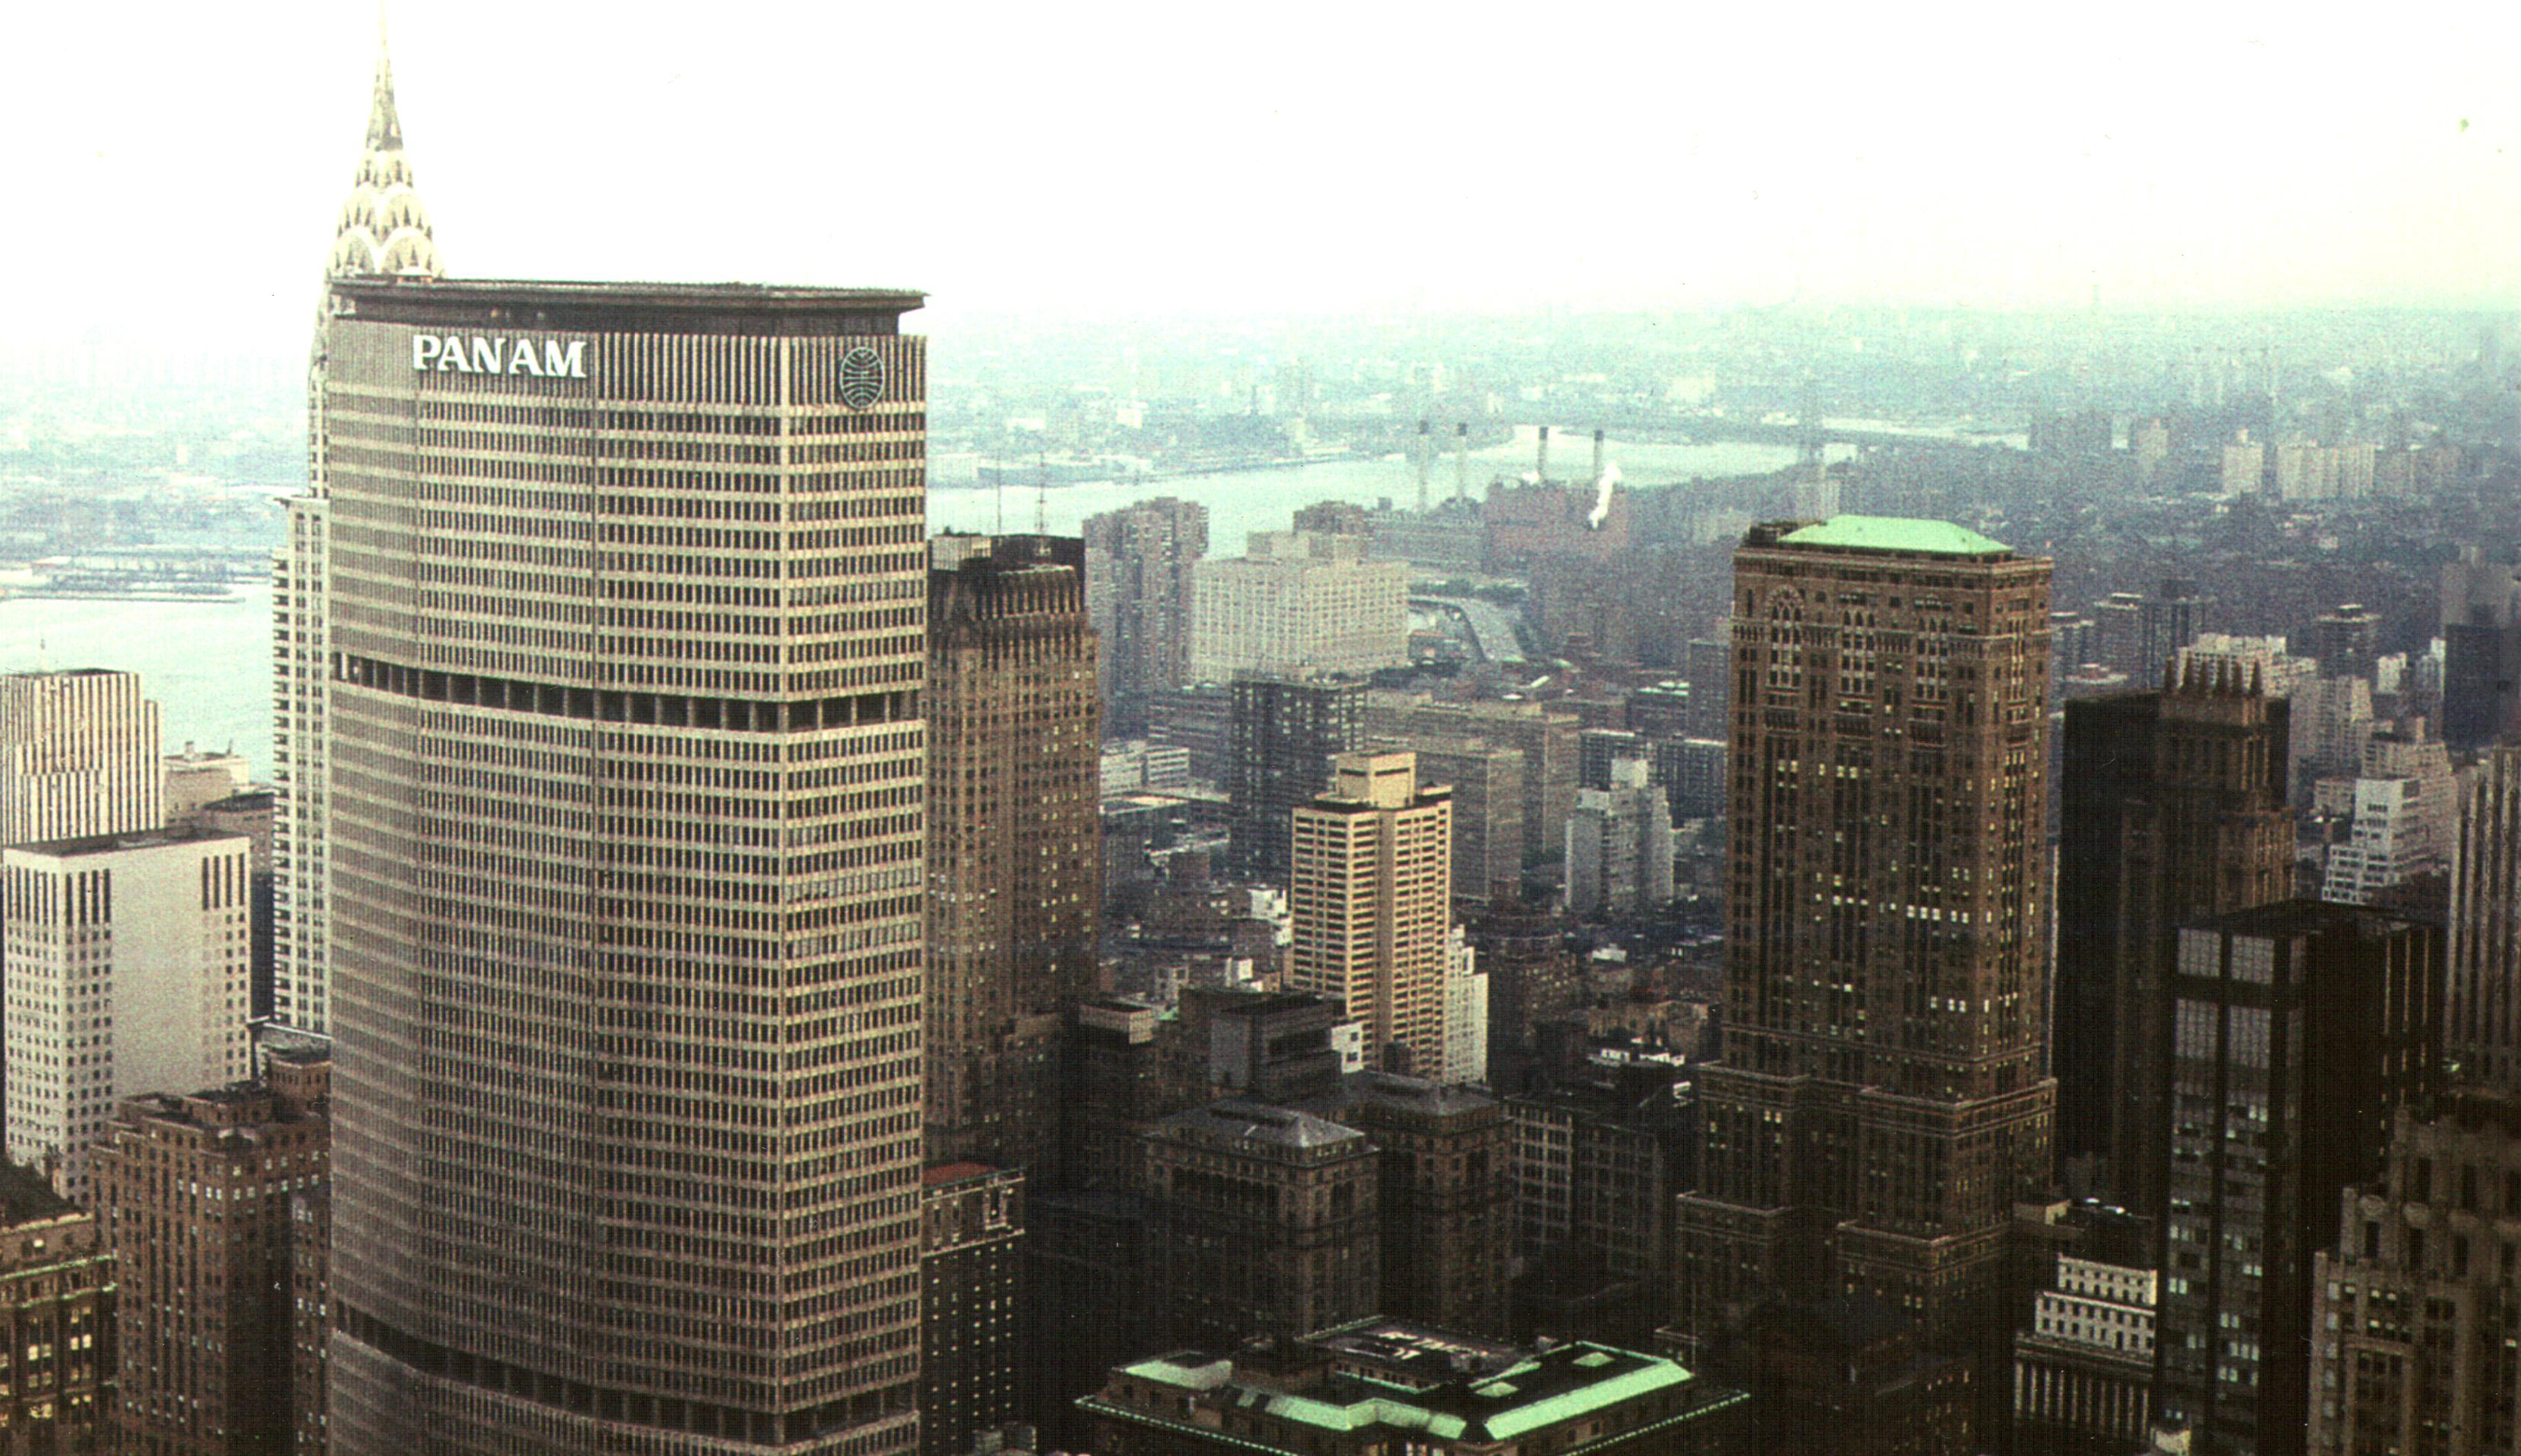 The Pan Am Building in 1977. Photo by Derzsi Elekes via Wikimedia Commons.